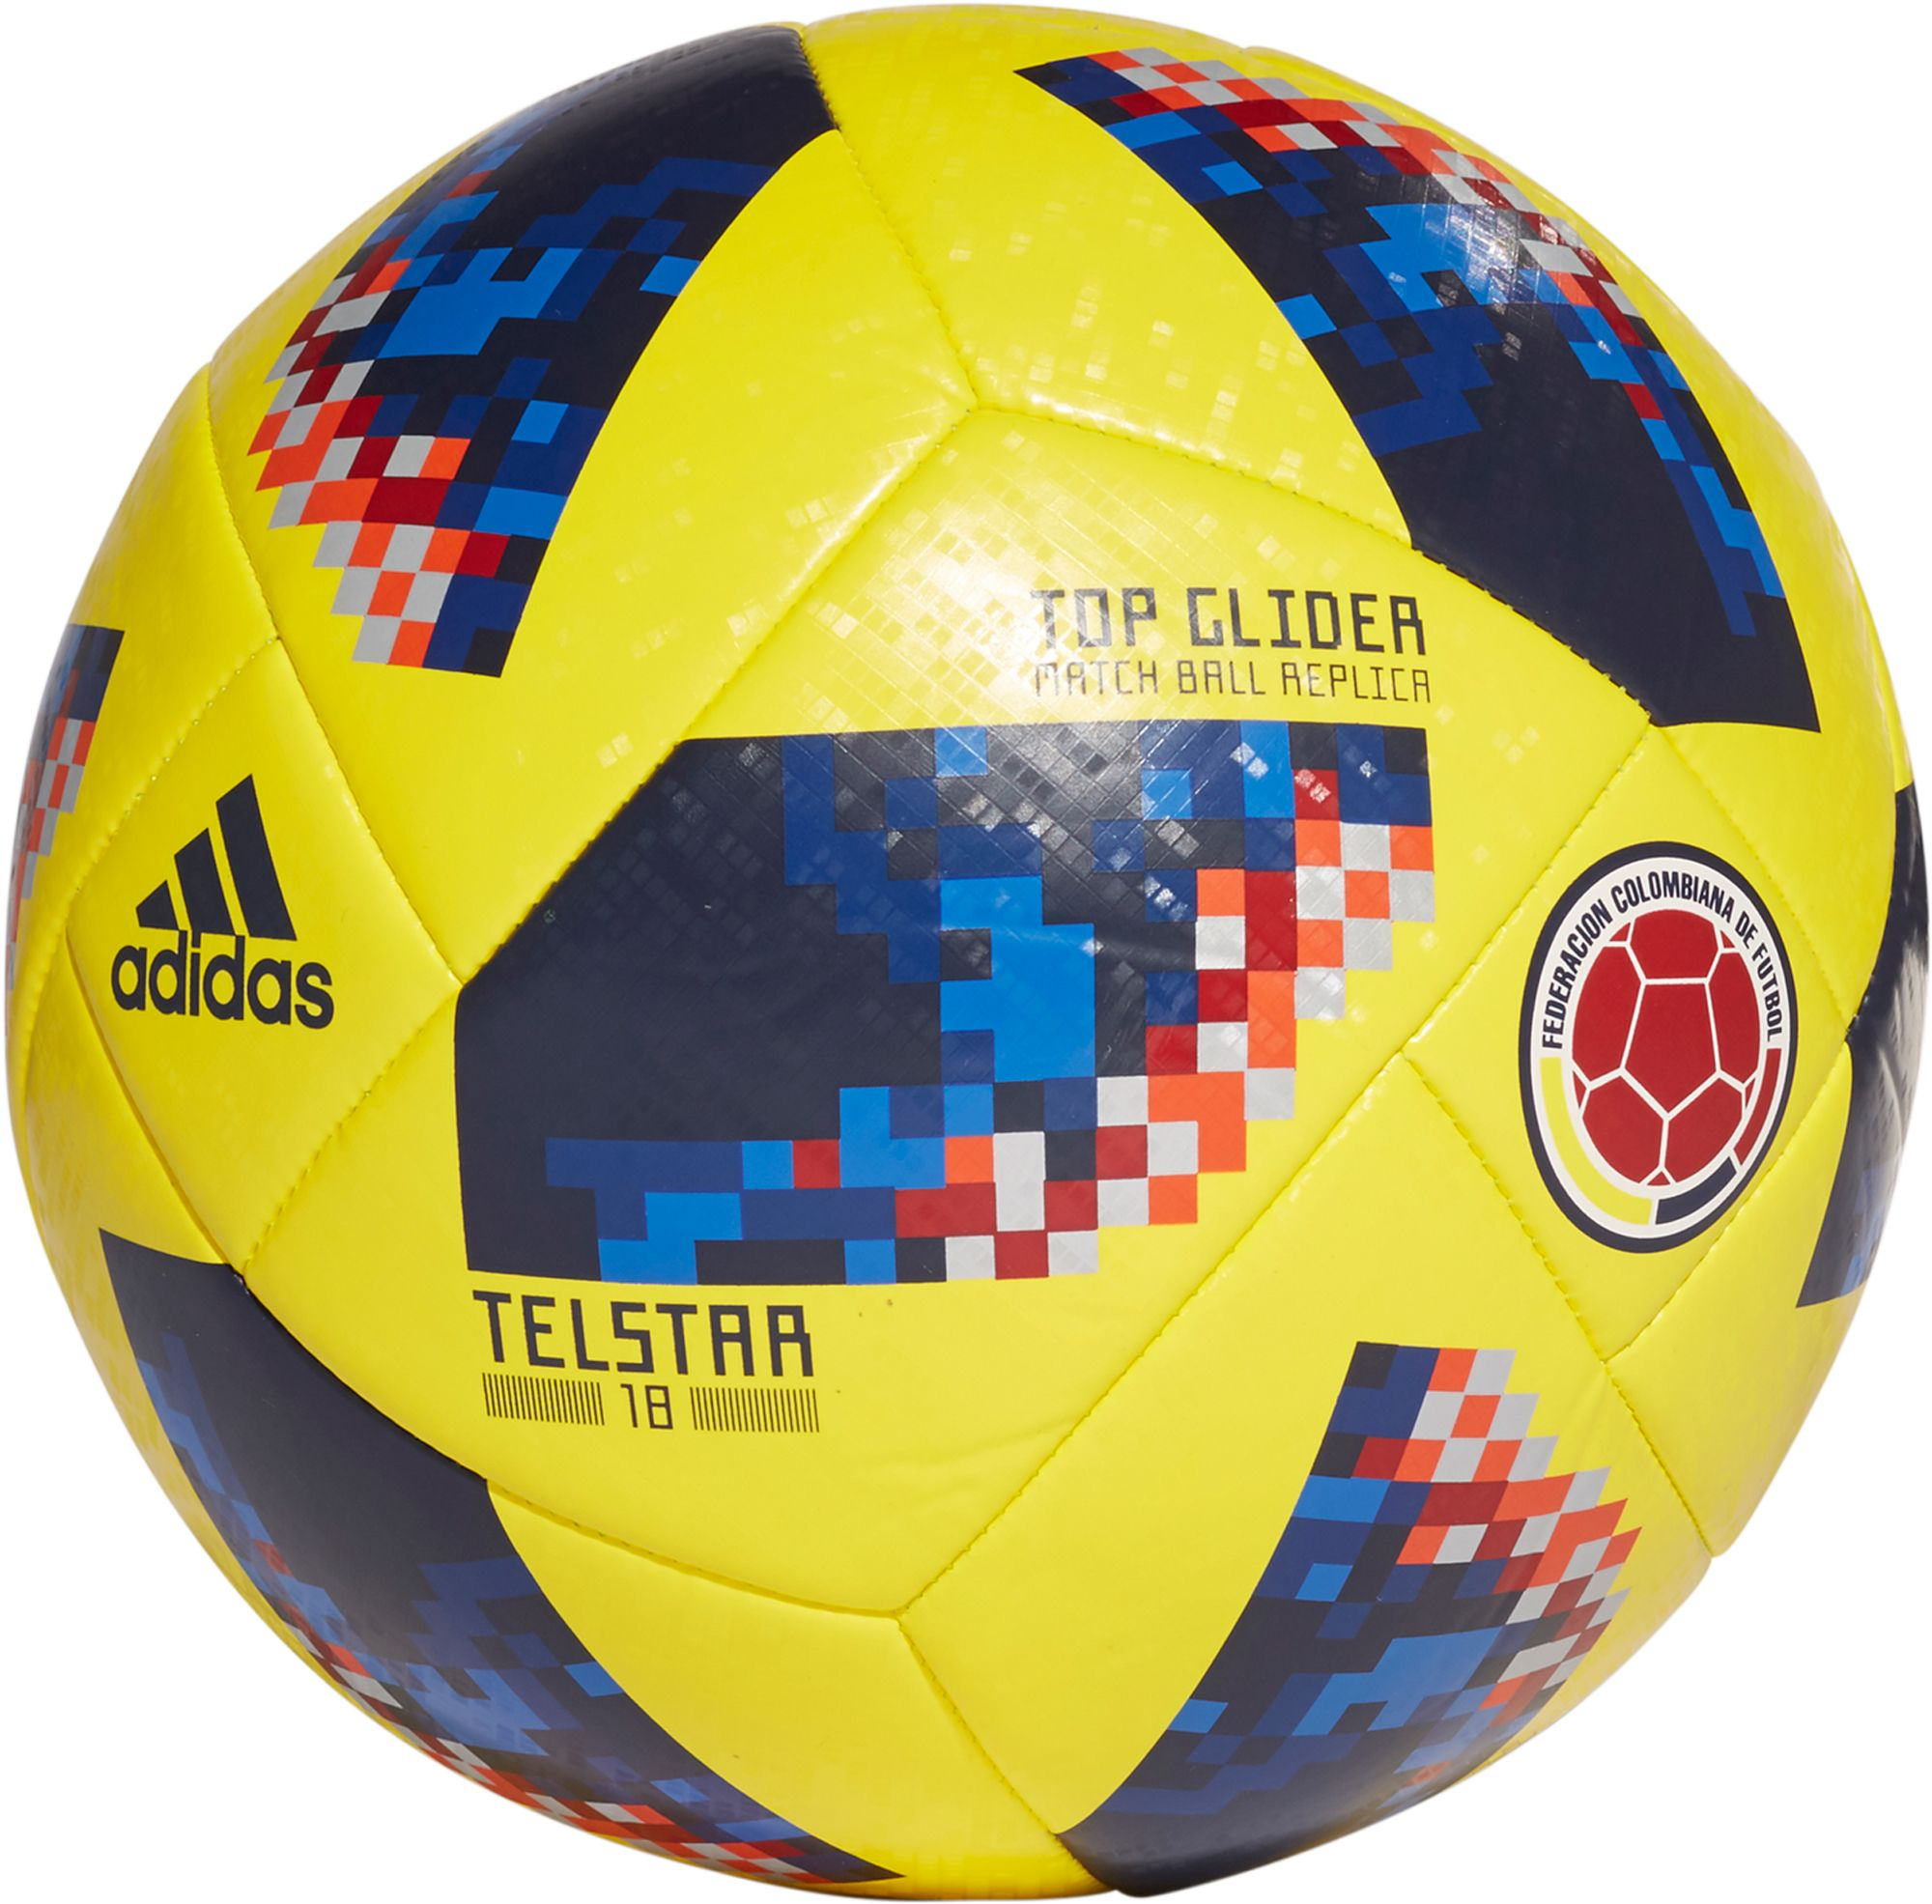 low priced 88f7c 2a014 ... release date adidas 2018 fifa world cup russia colombia supporters glider  soccer ball dicks sporting goods